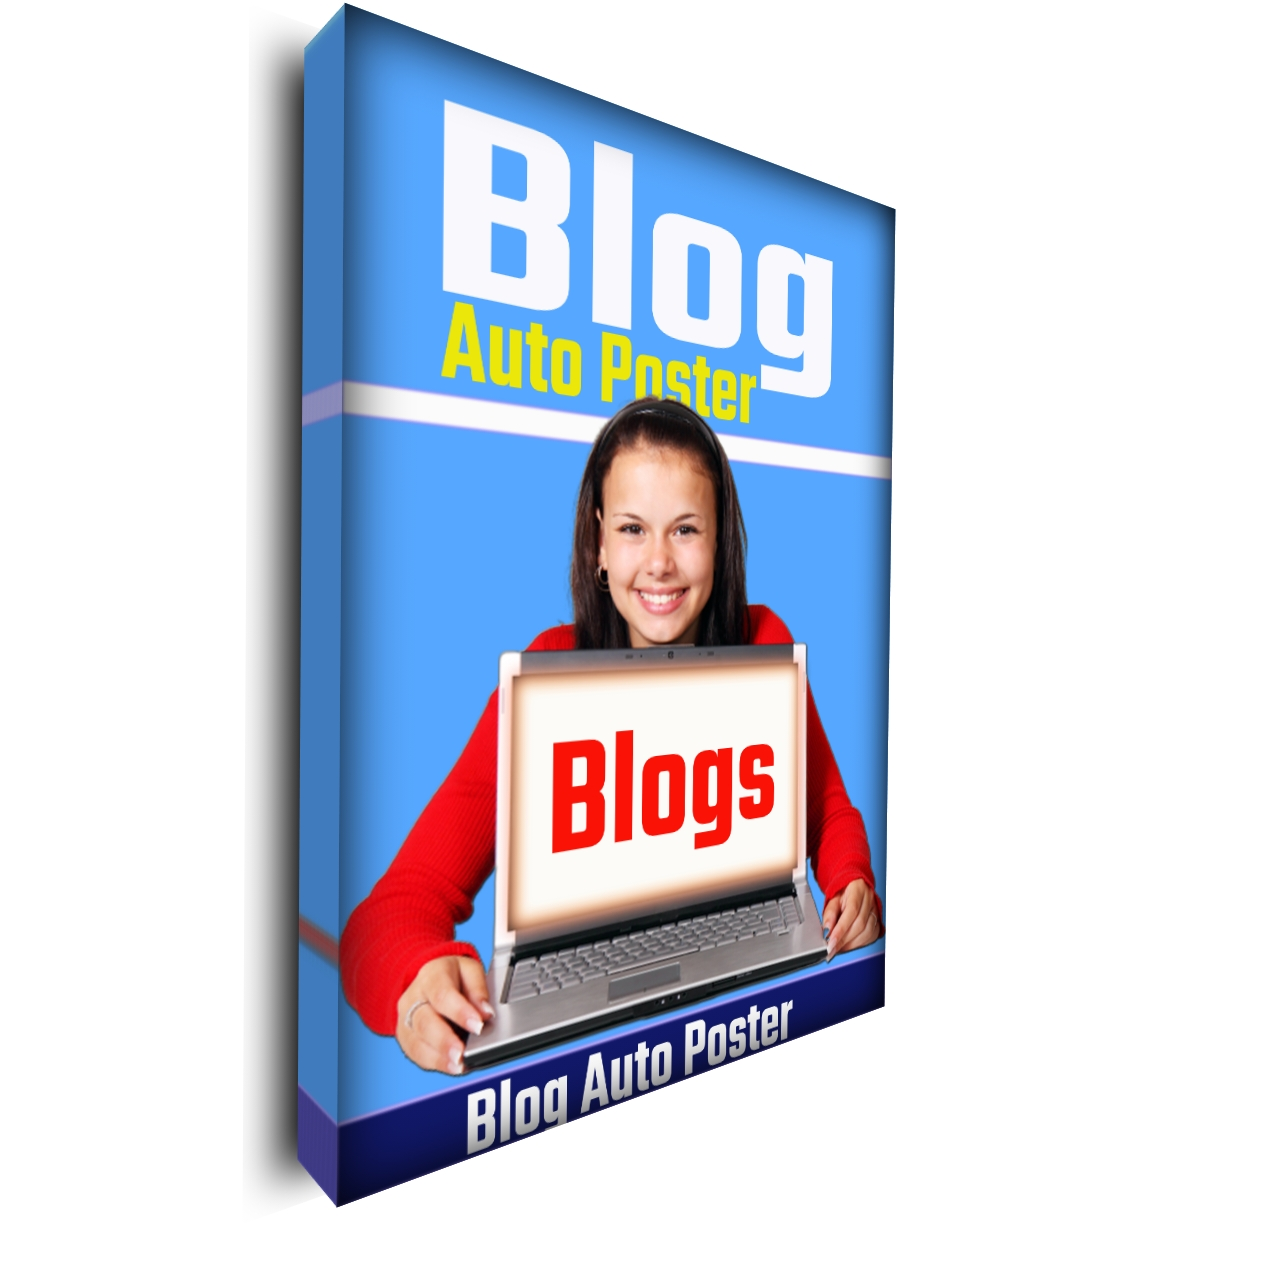 Blog Poster,  Blog Auto Poster,  Bloggers Softwere.